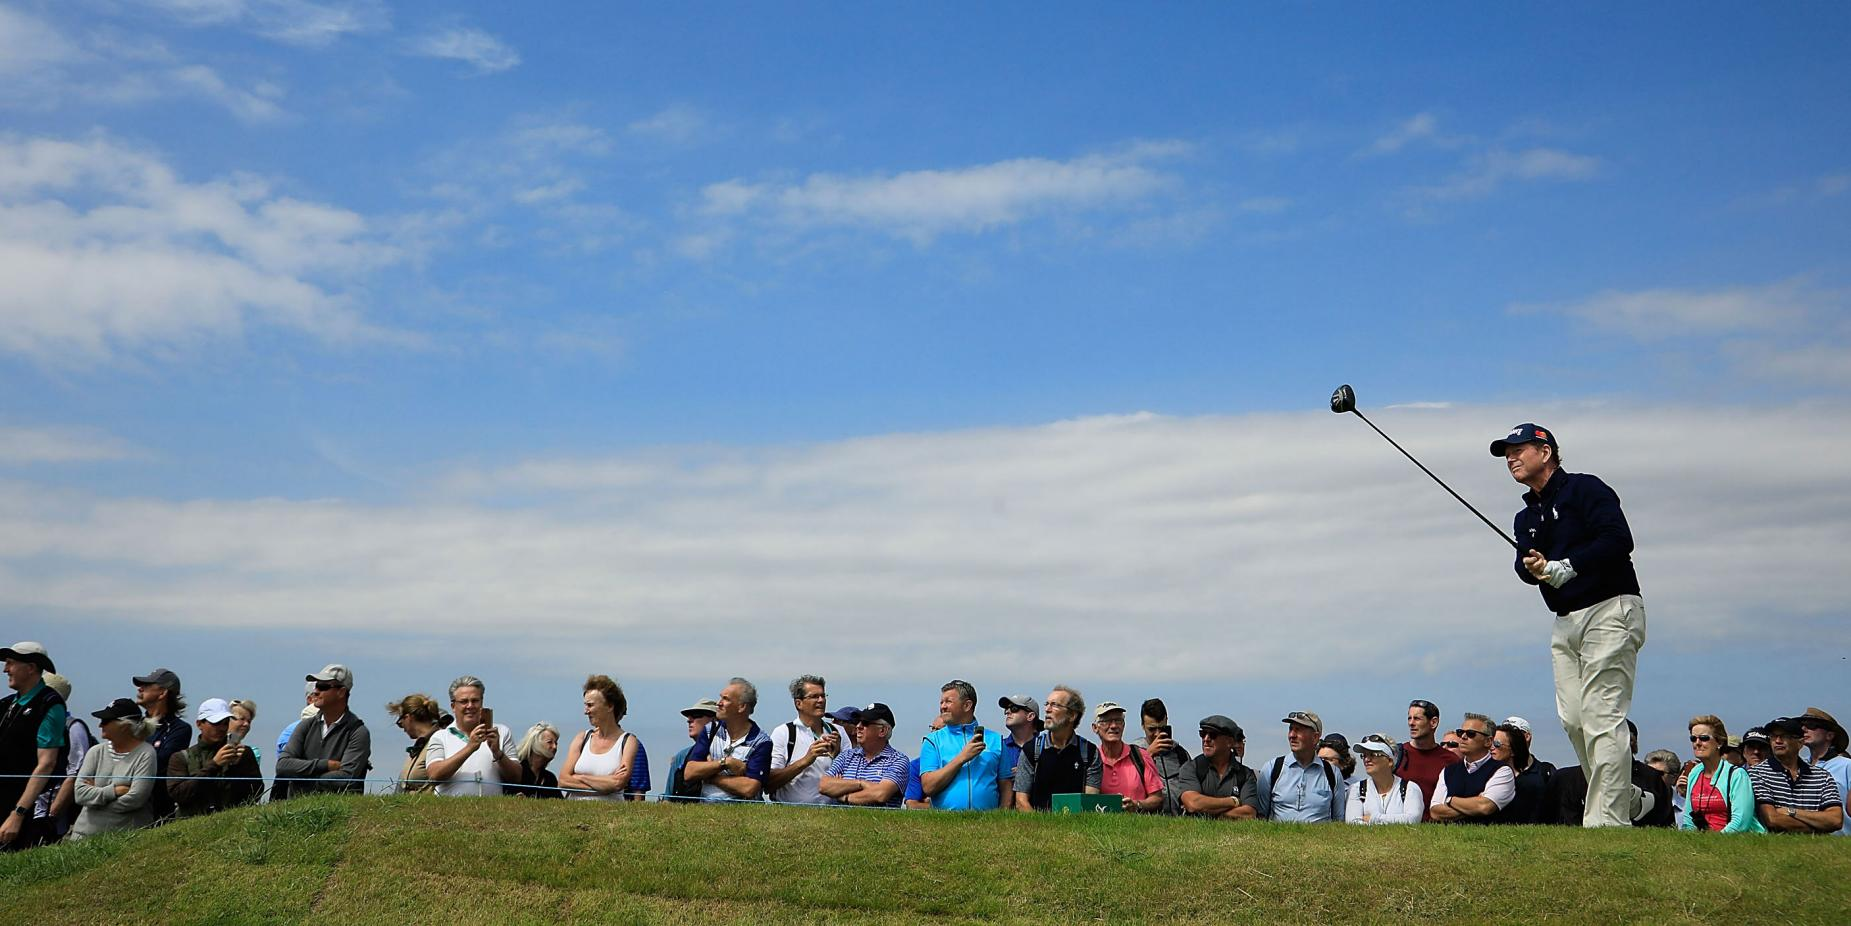 tom-watson-senior-british-open-2018-driving-blue-sky.jpg